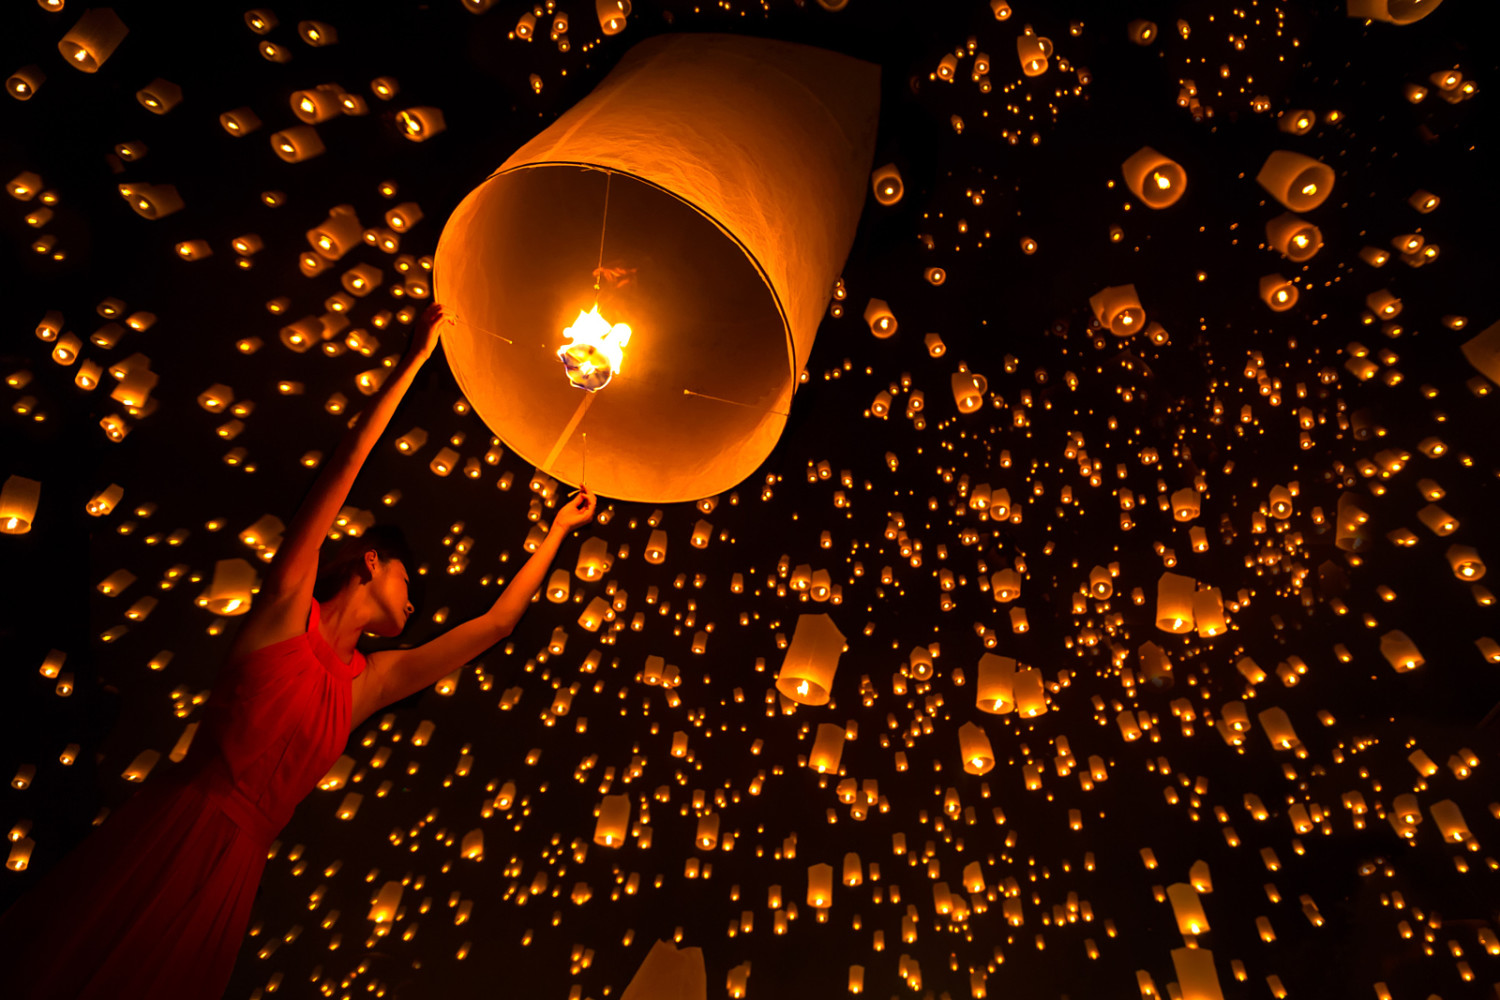 500px Blog The Passionate Photographer Community 21 Incredibly Beautiful Photos Of Yi Peng Lantern Festival